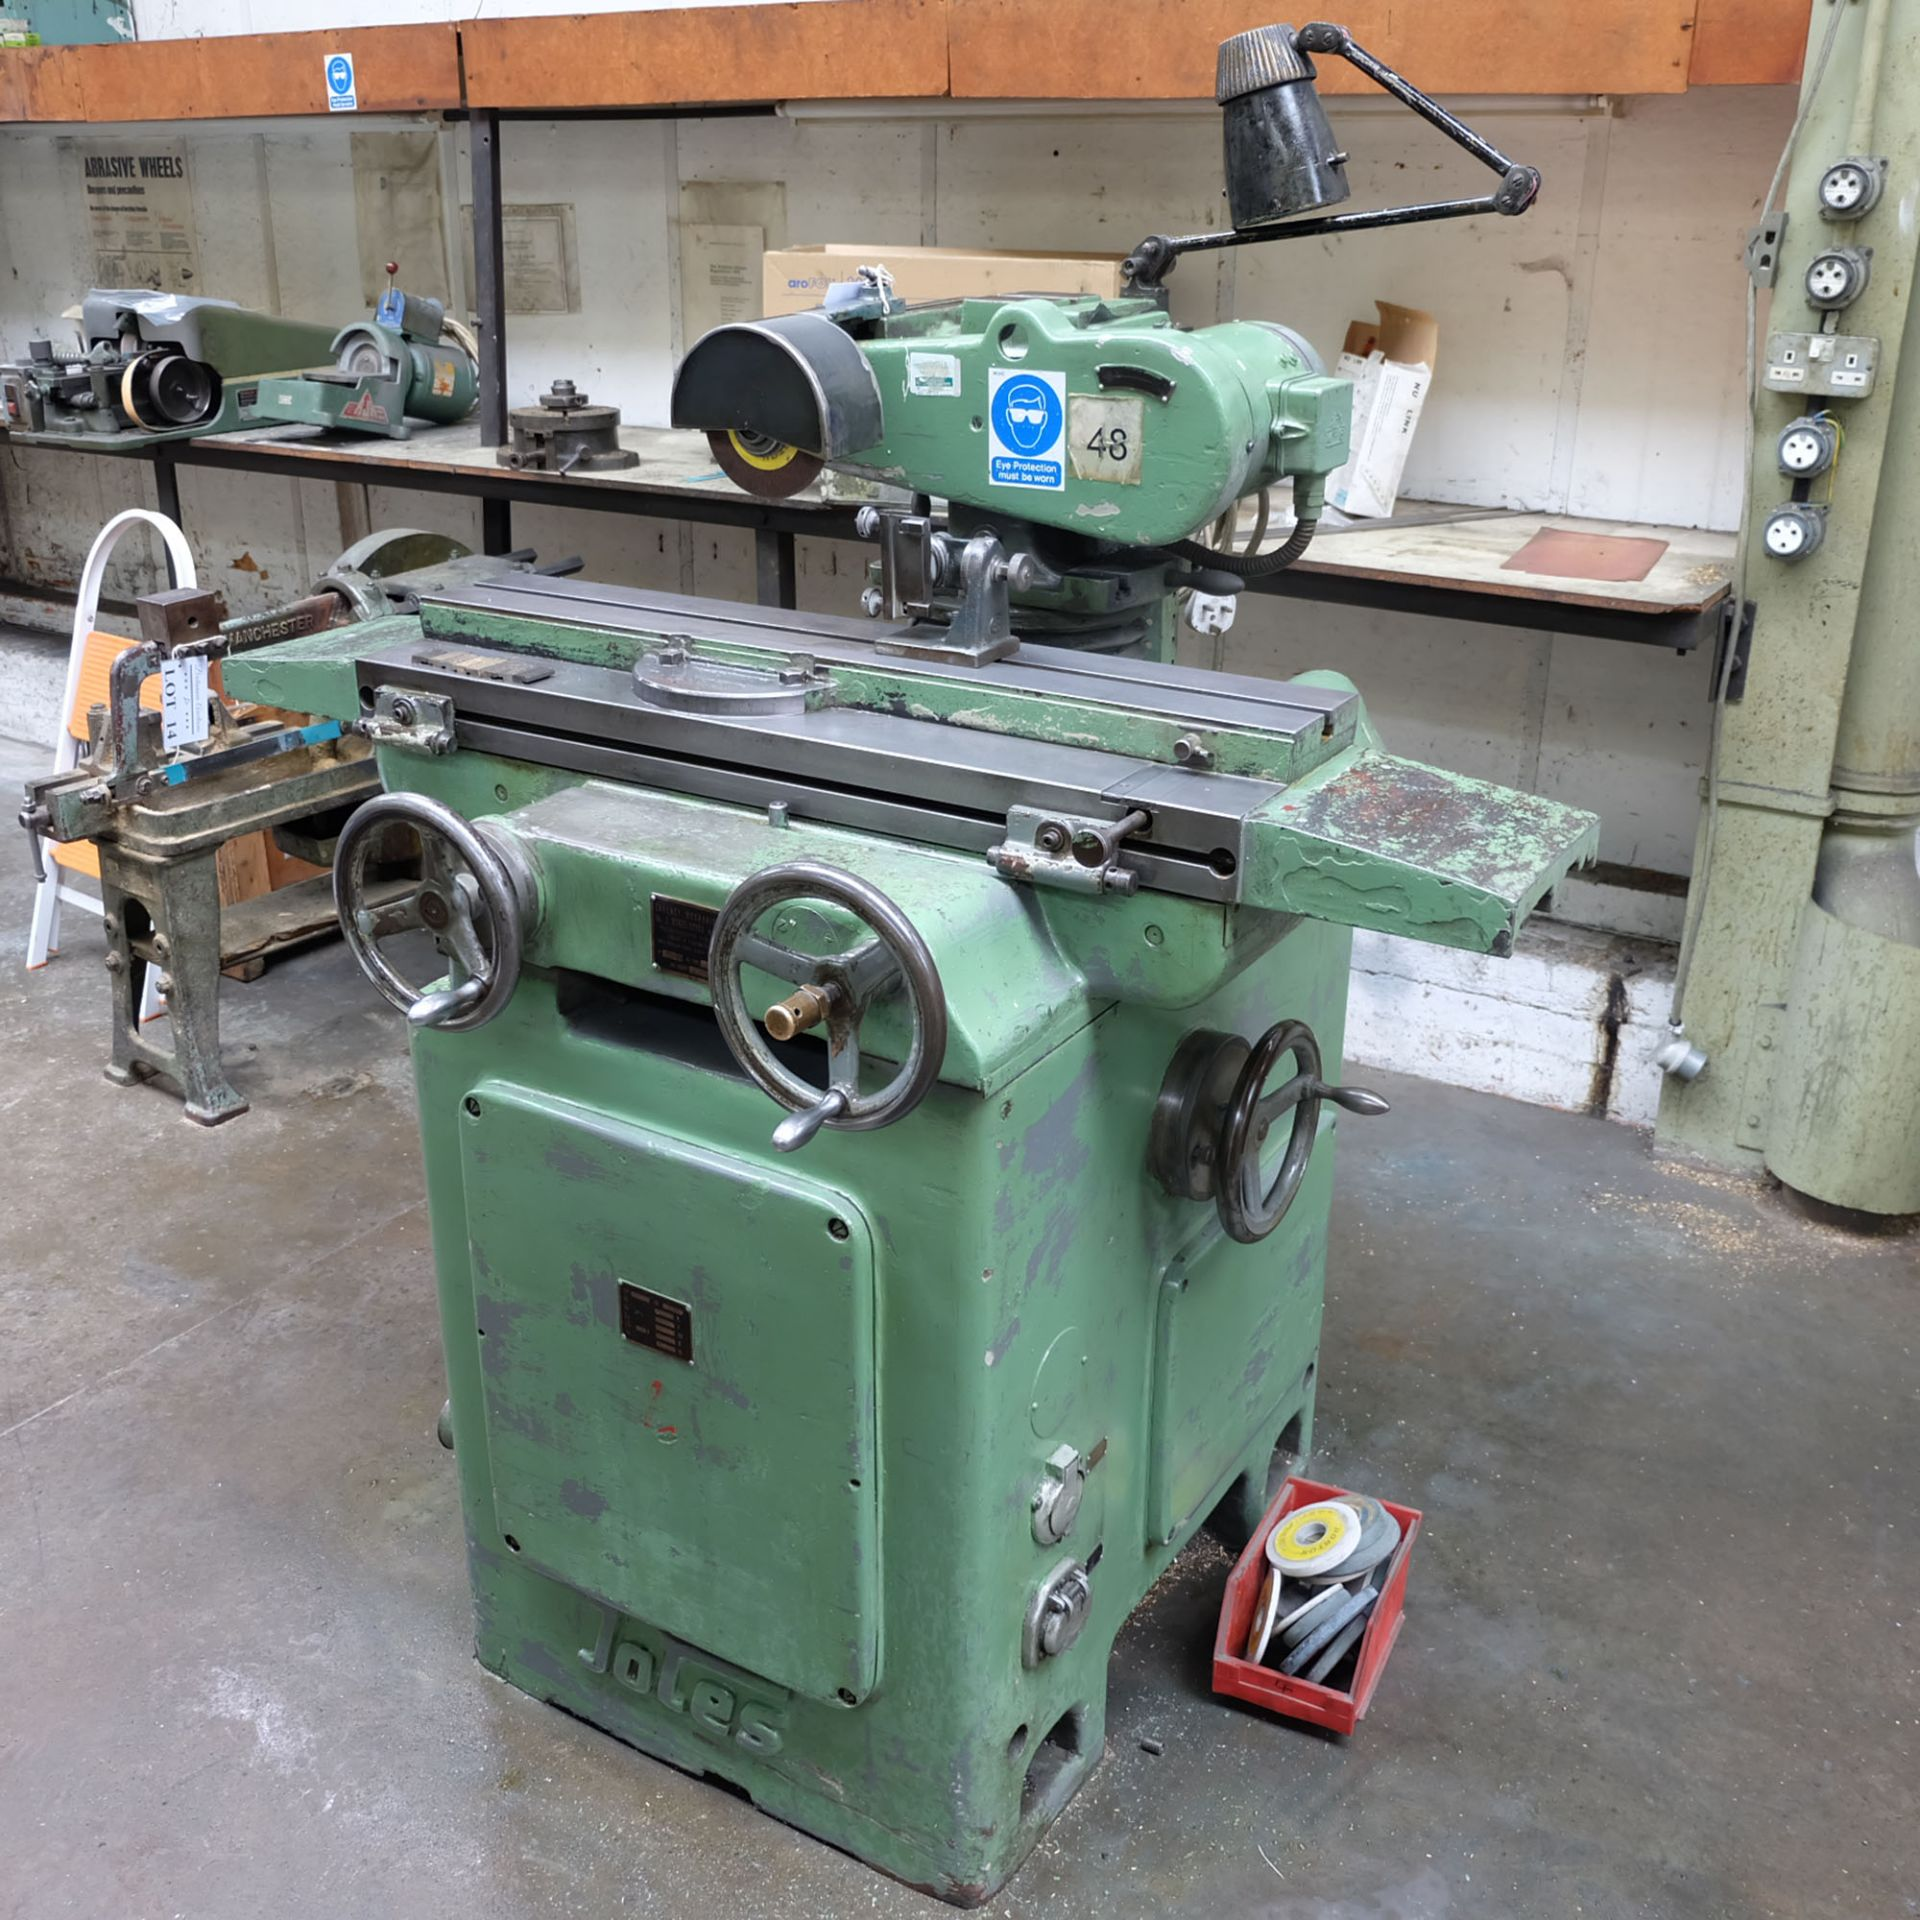 Jotes Model NVA-25 Tool and Cutter Grinder. Rise and Fall and Tilt and Swivel Head. - Image 2 of 6